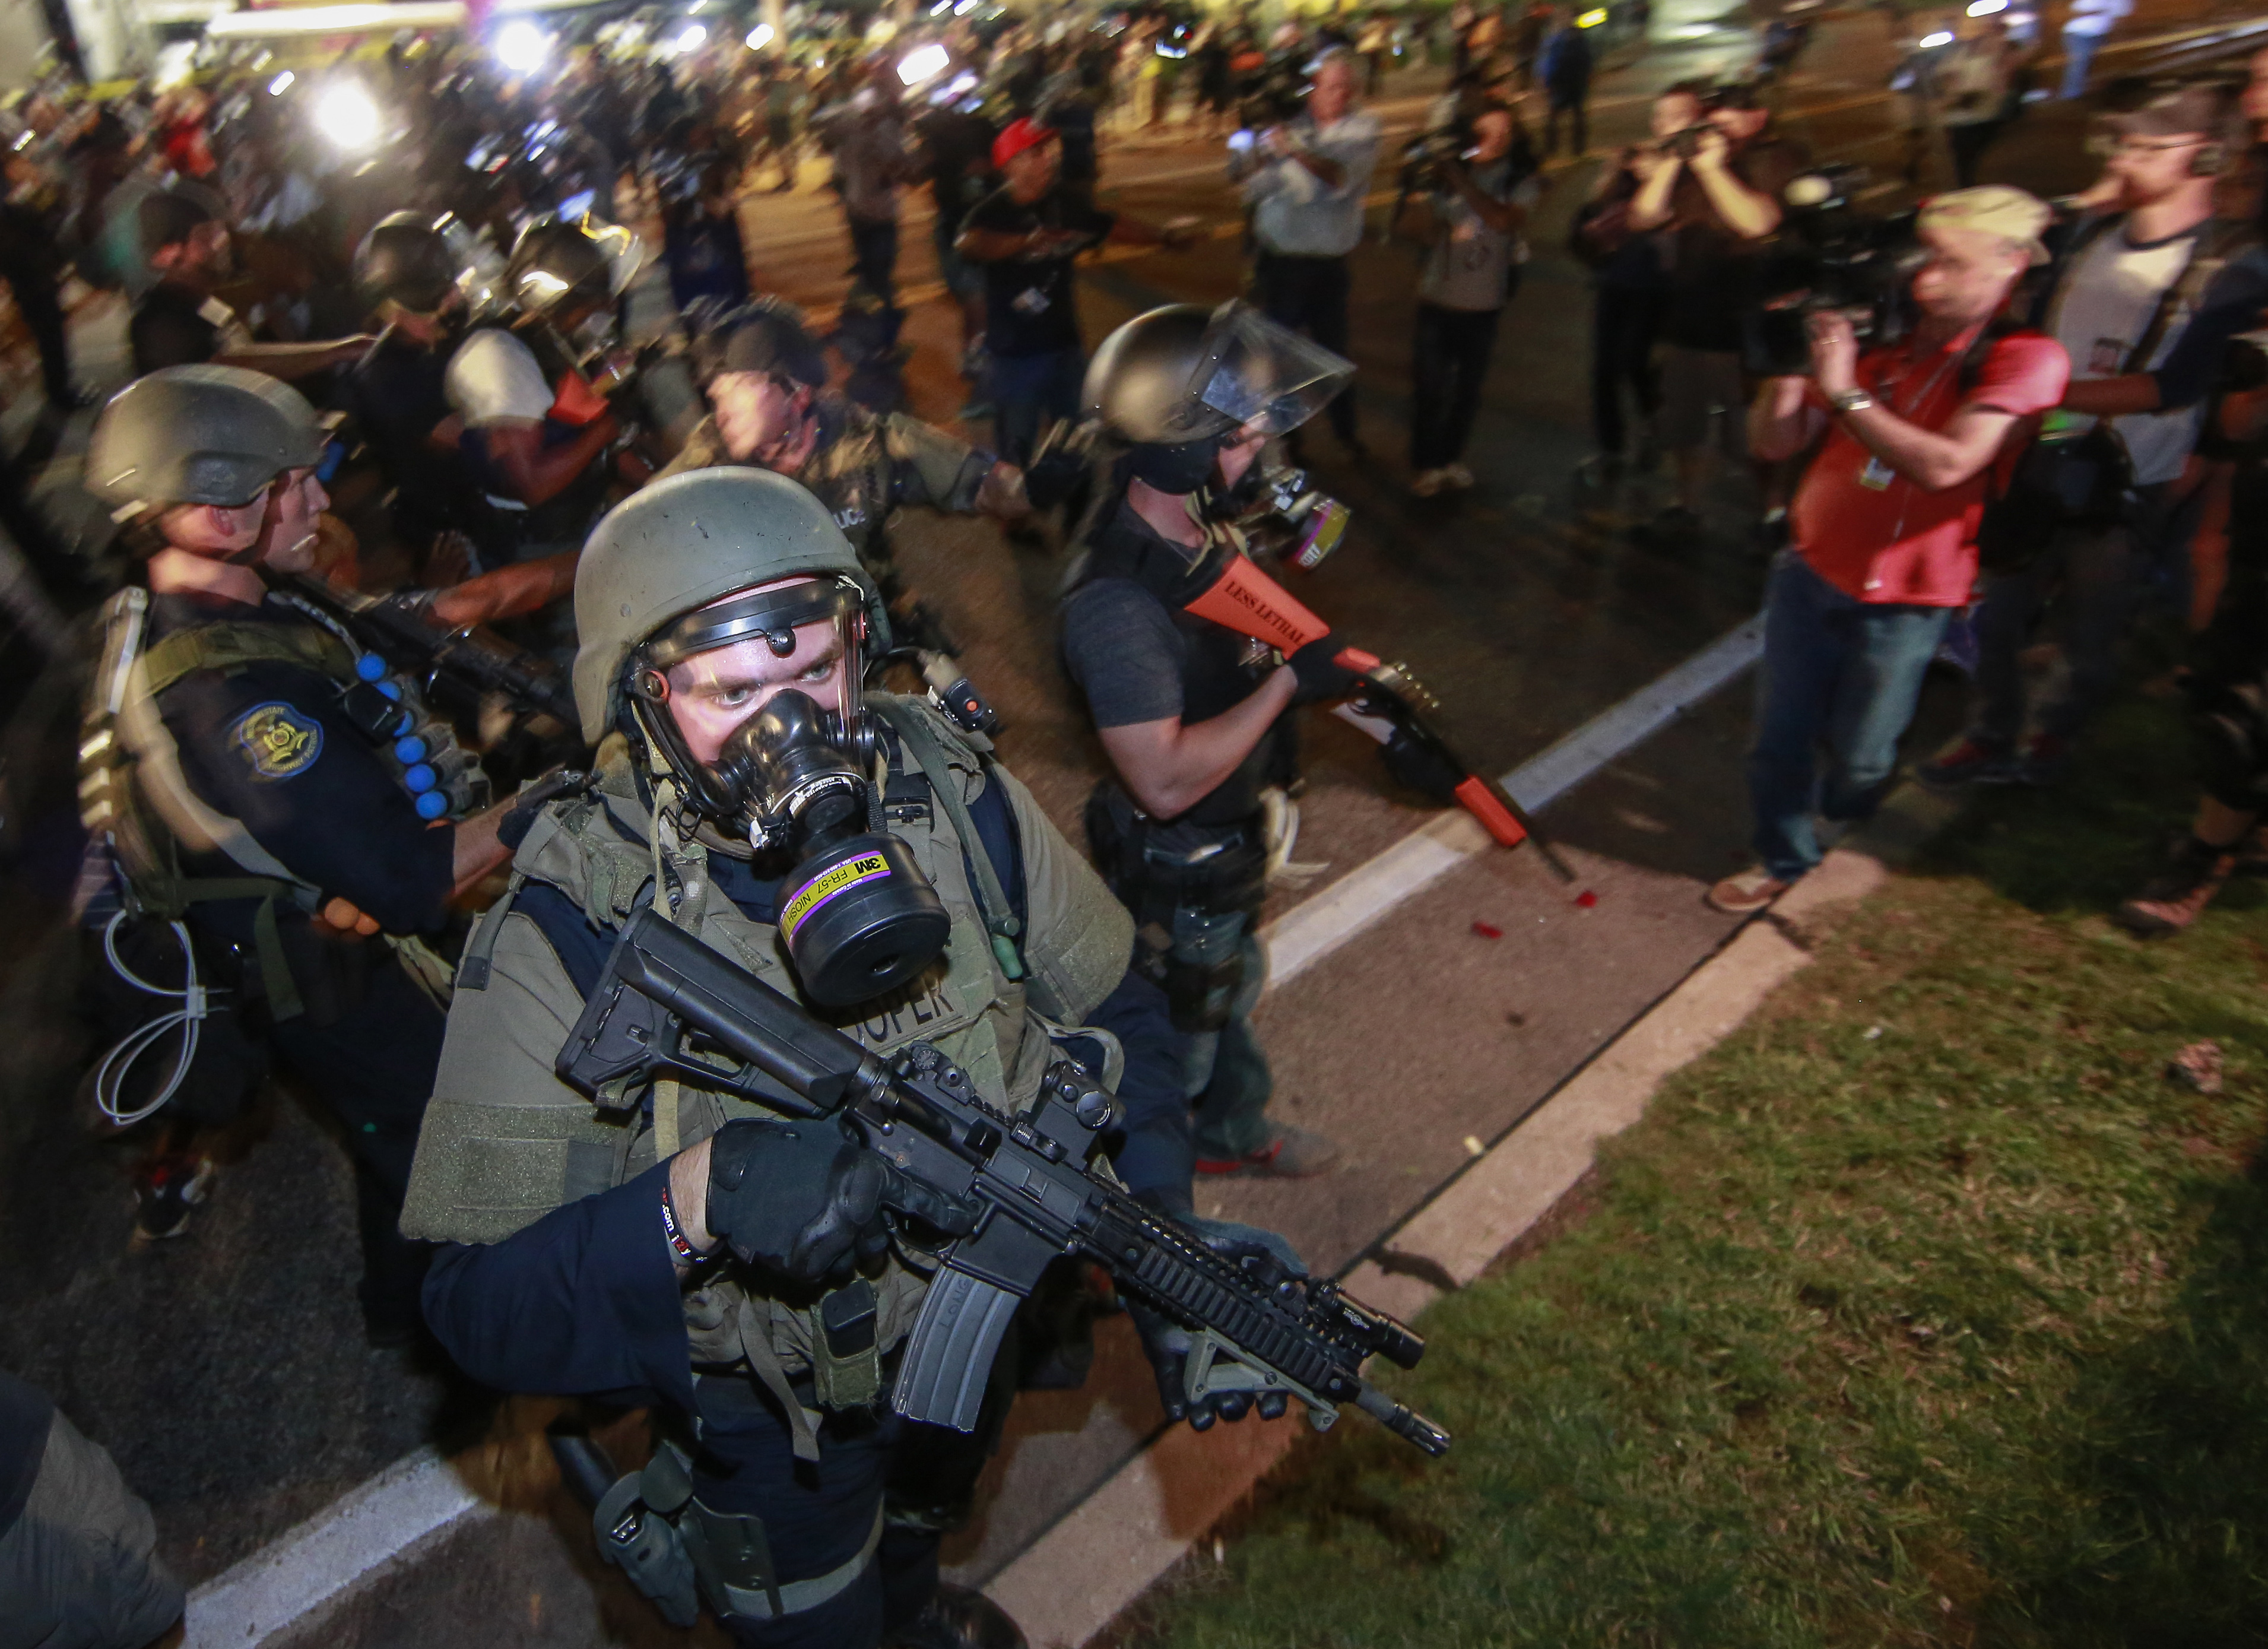 Law enforcement officers watch on during a protest on August 18, 2014 for Michael Brown, who was killed by a police officer on August 9 in Ferguson, United States.